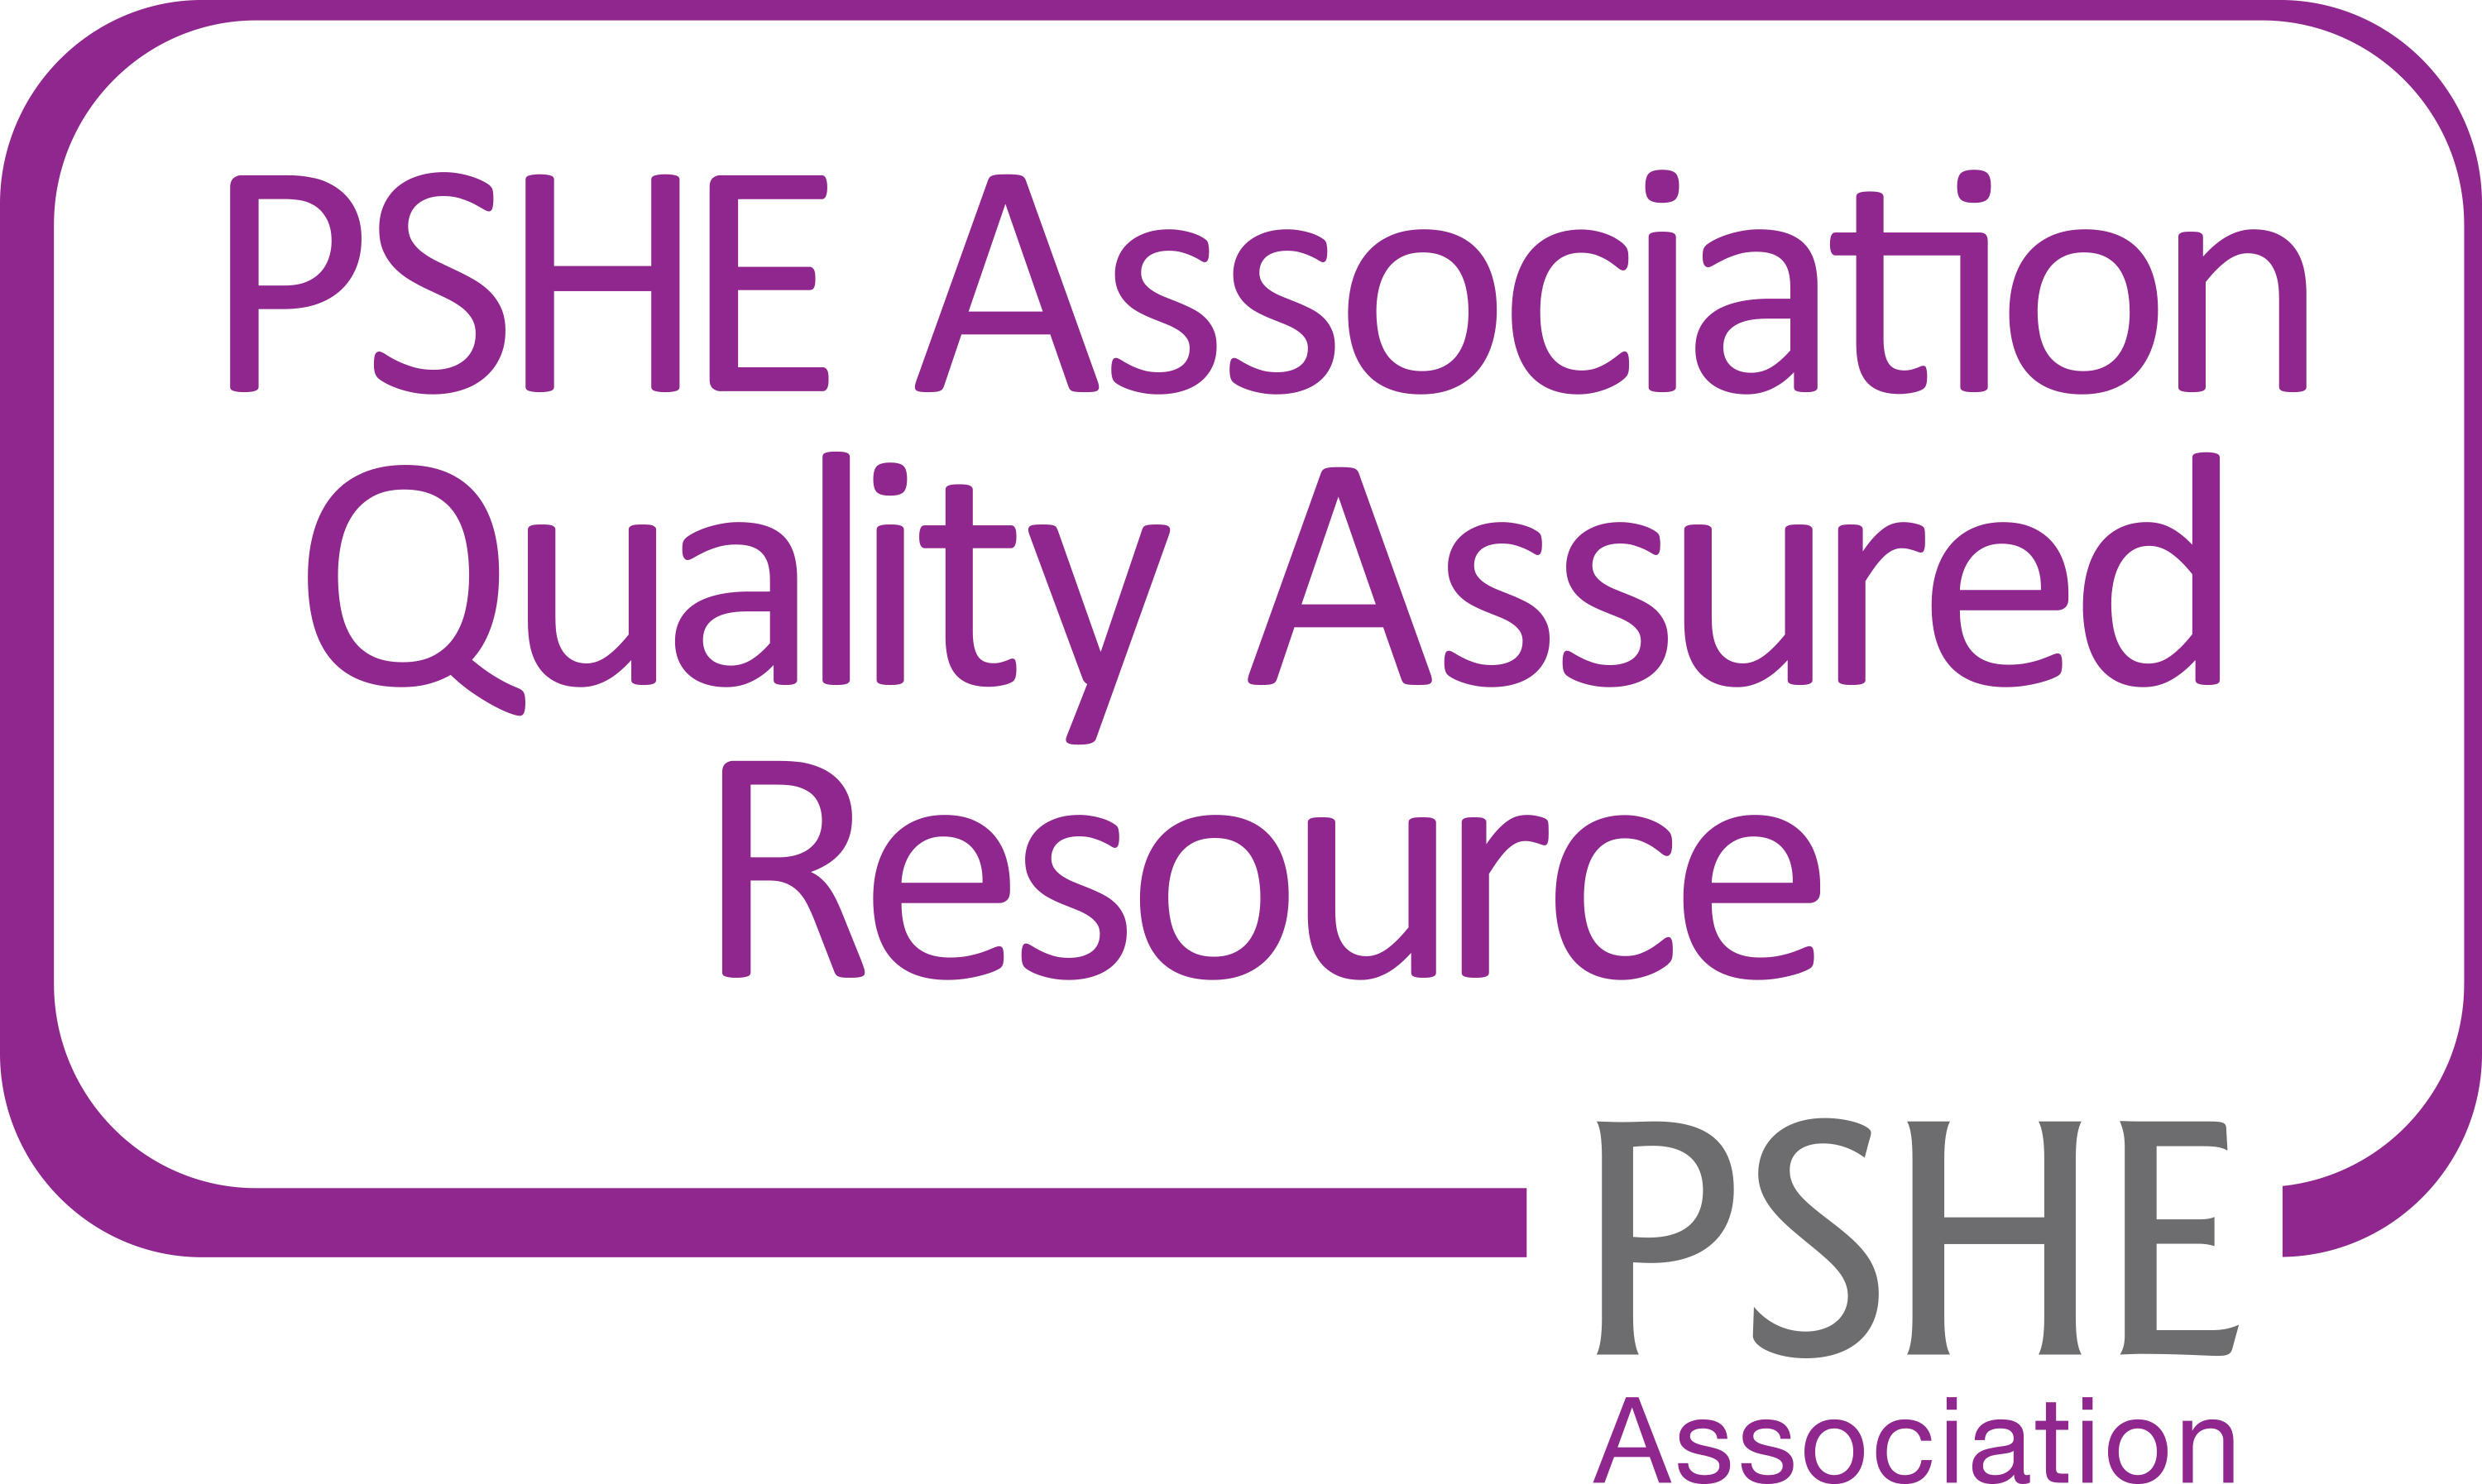 PSHE Association Quality Assured Resource logo